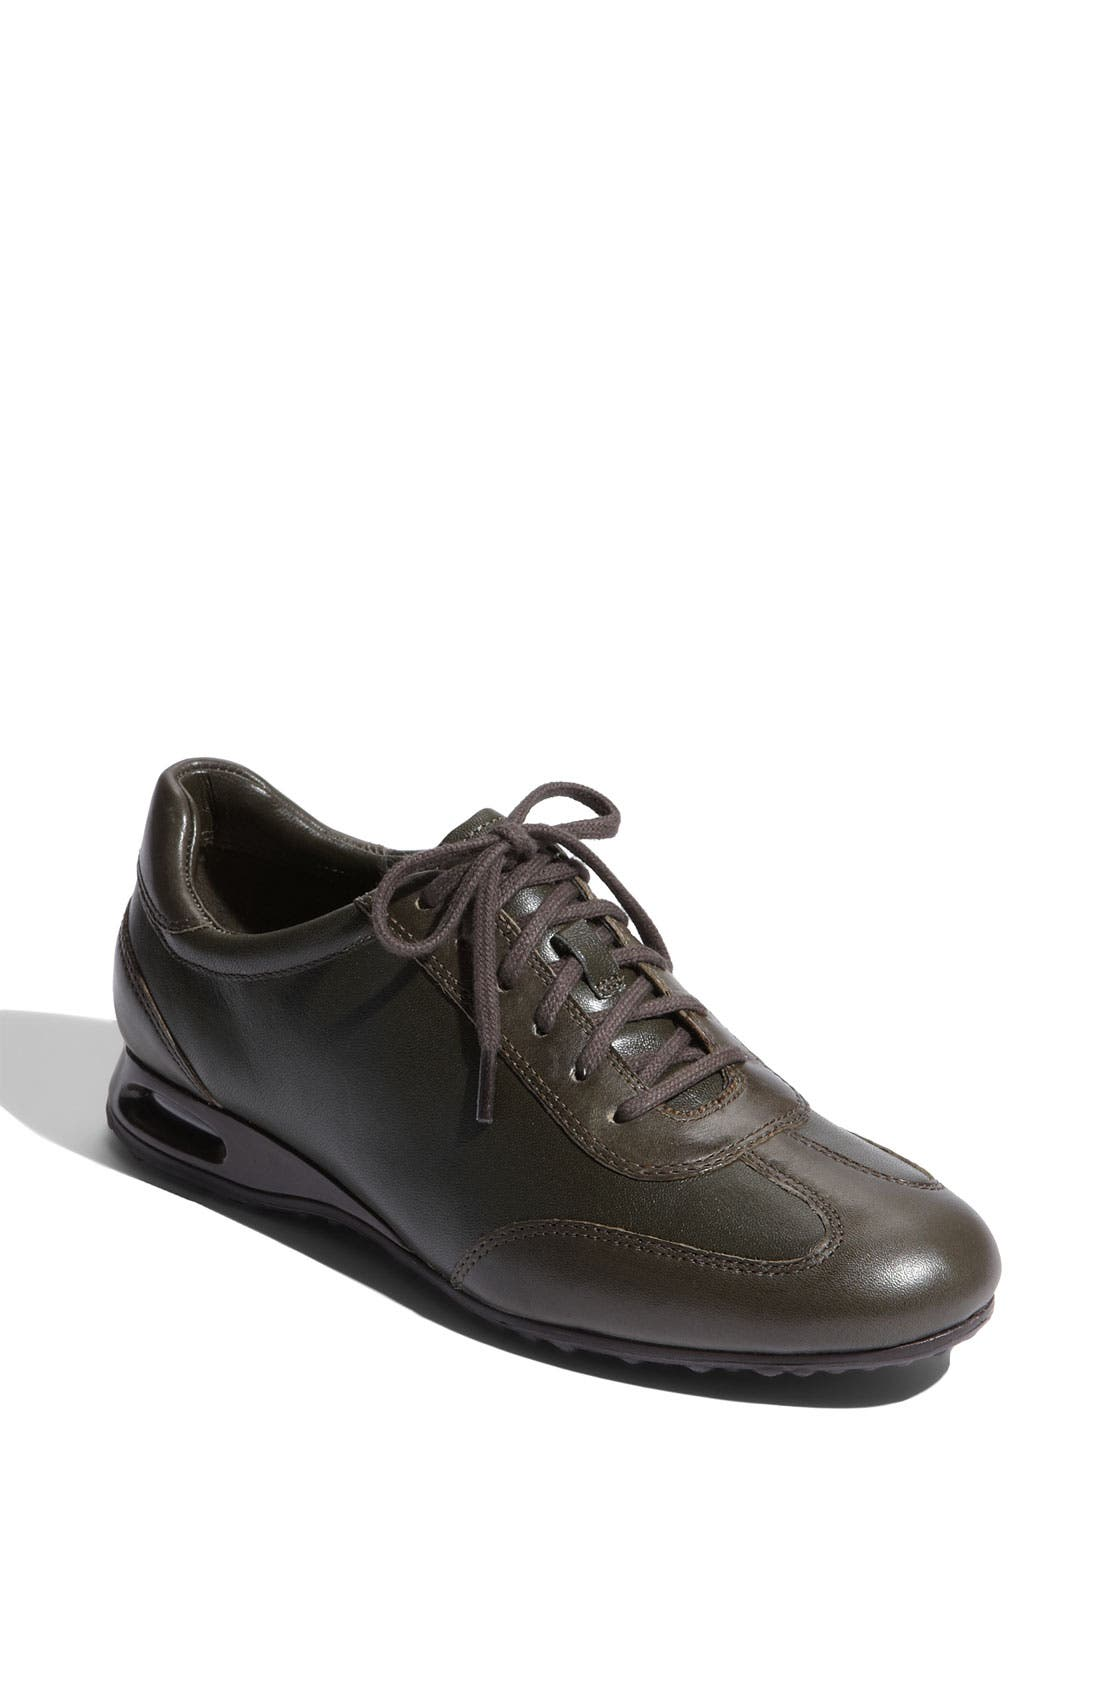 Main Image - Cole Haan 'Air Bria' Leather Oxford